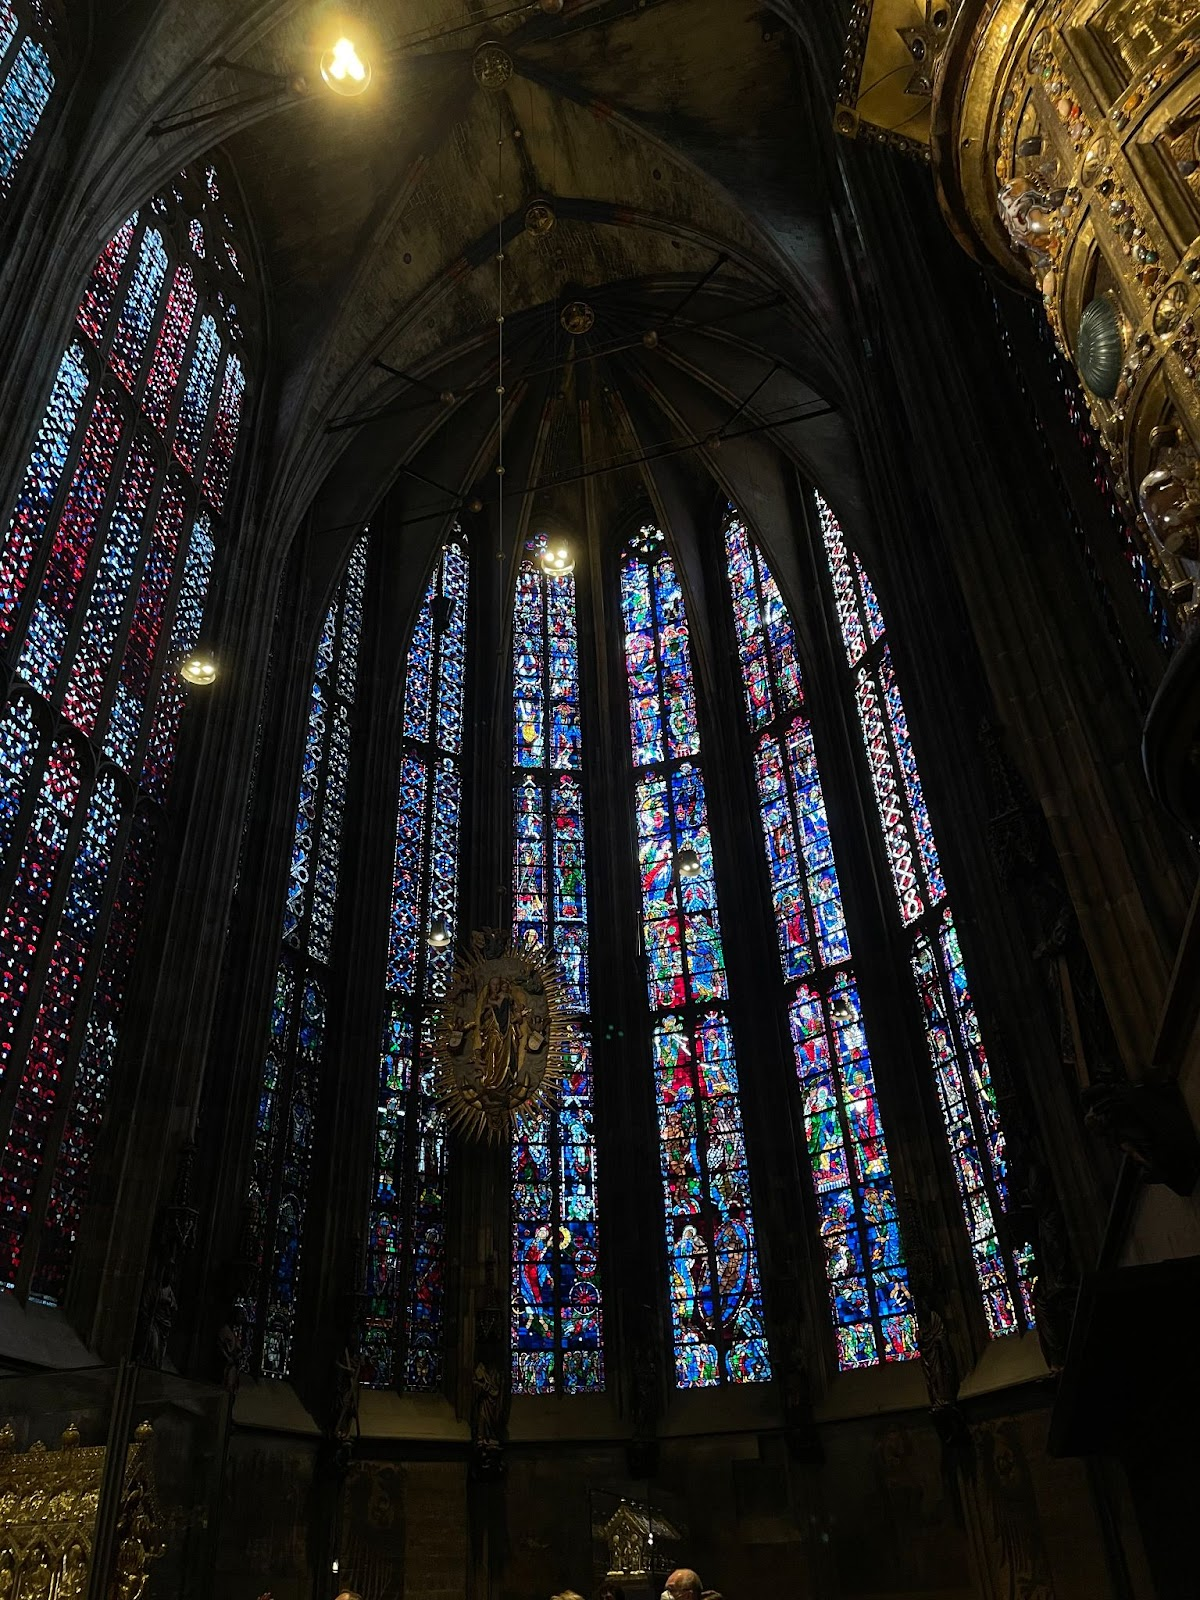 Stained glass in Aachen Cathedral